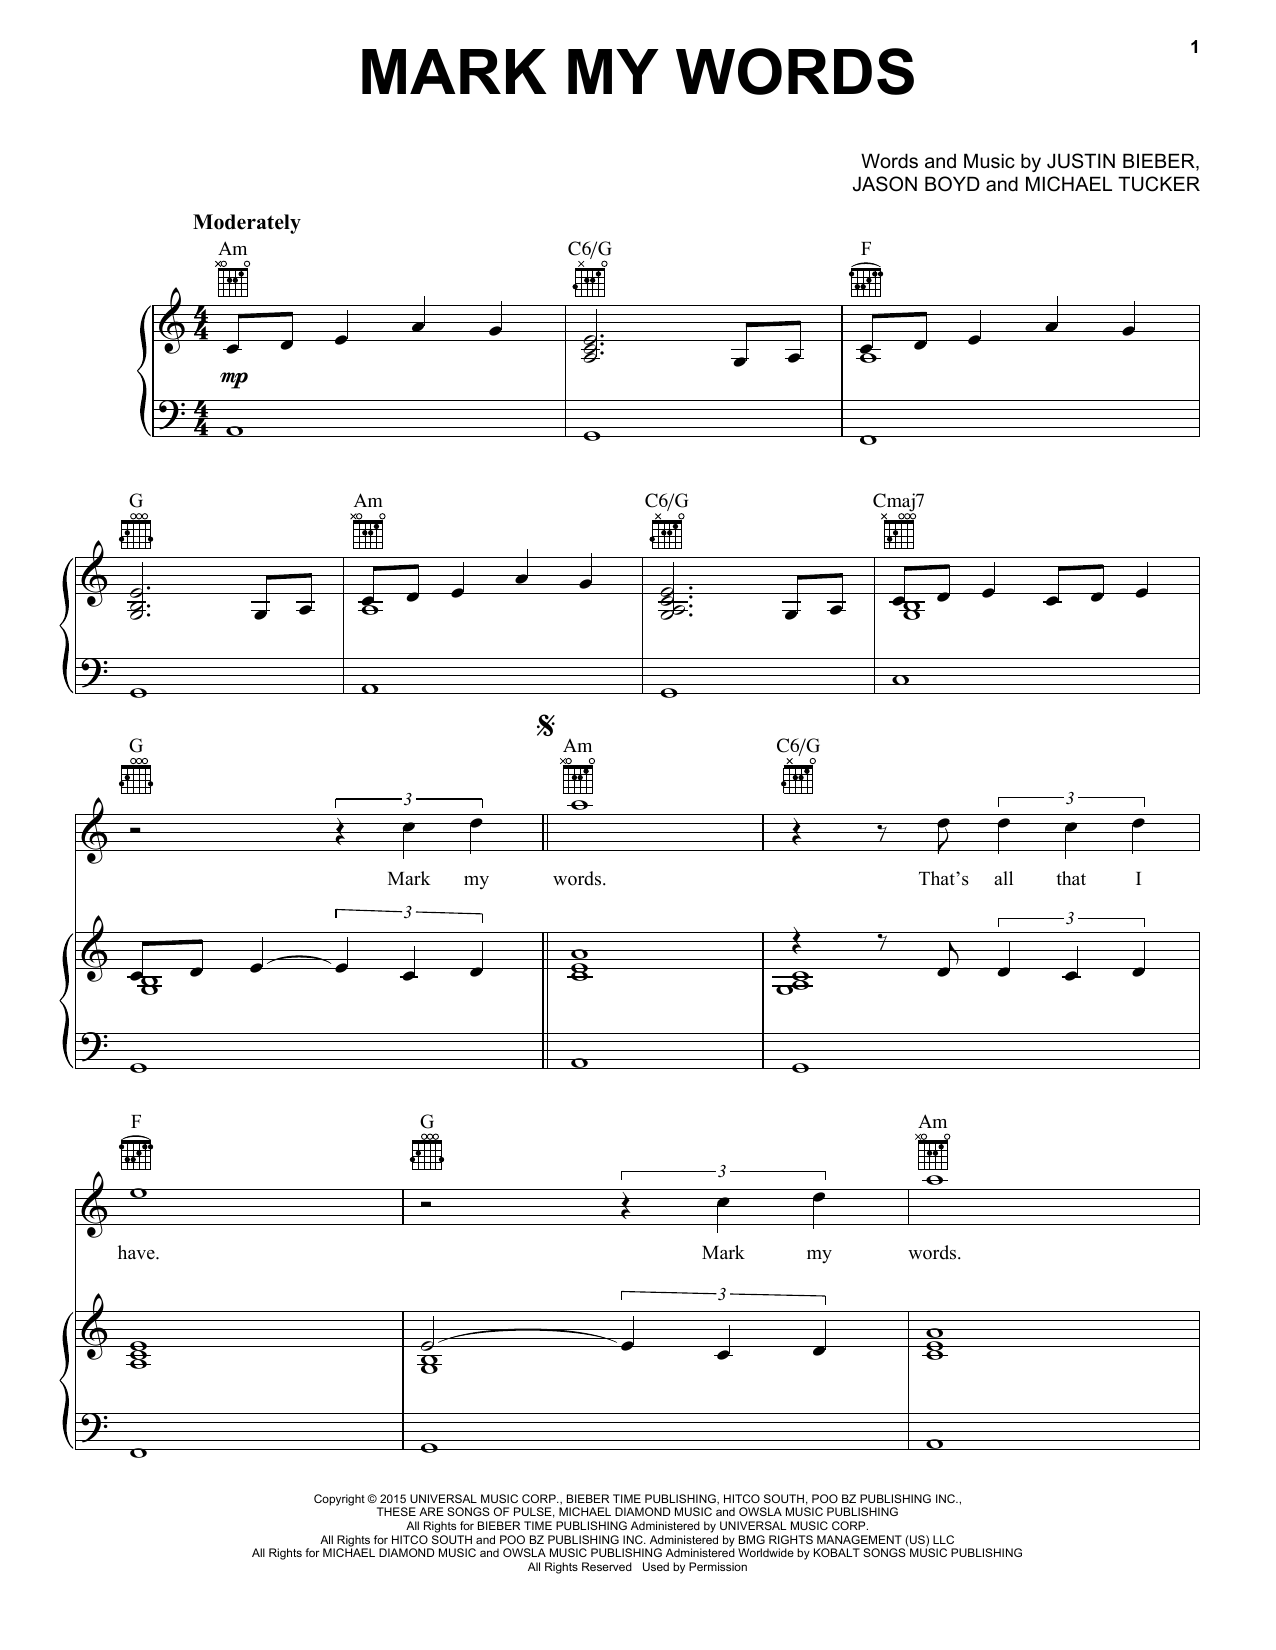 Justin Bieber Mark My Words sheet music notes and chords. Download Printable PDF.